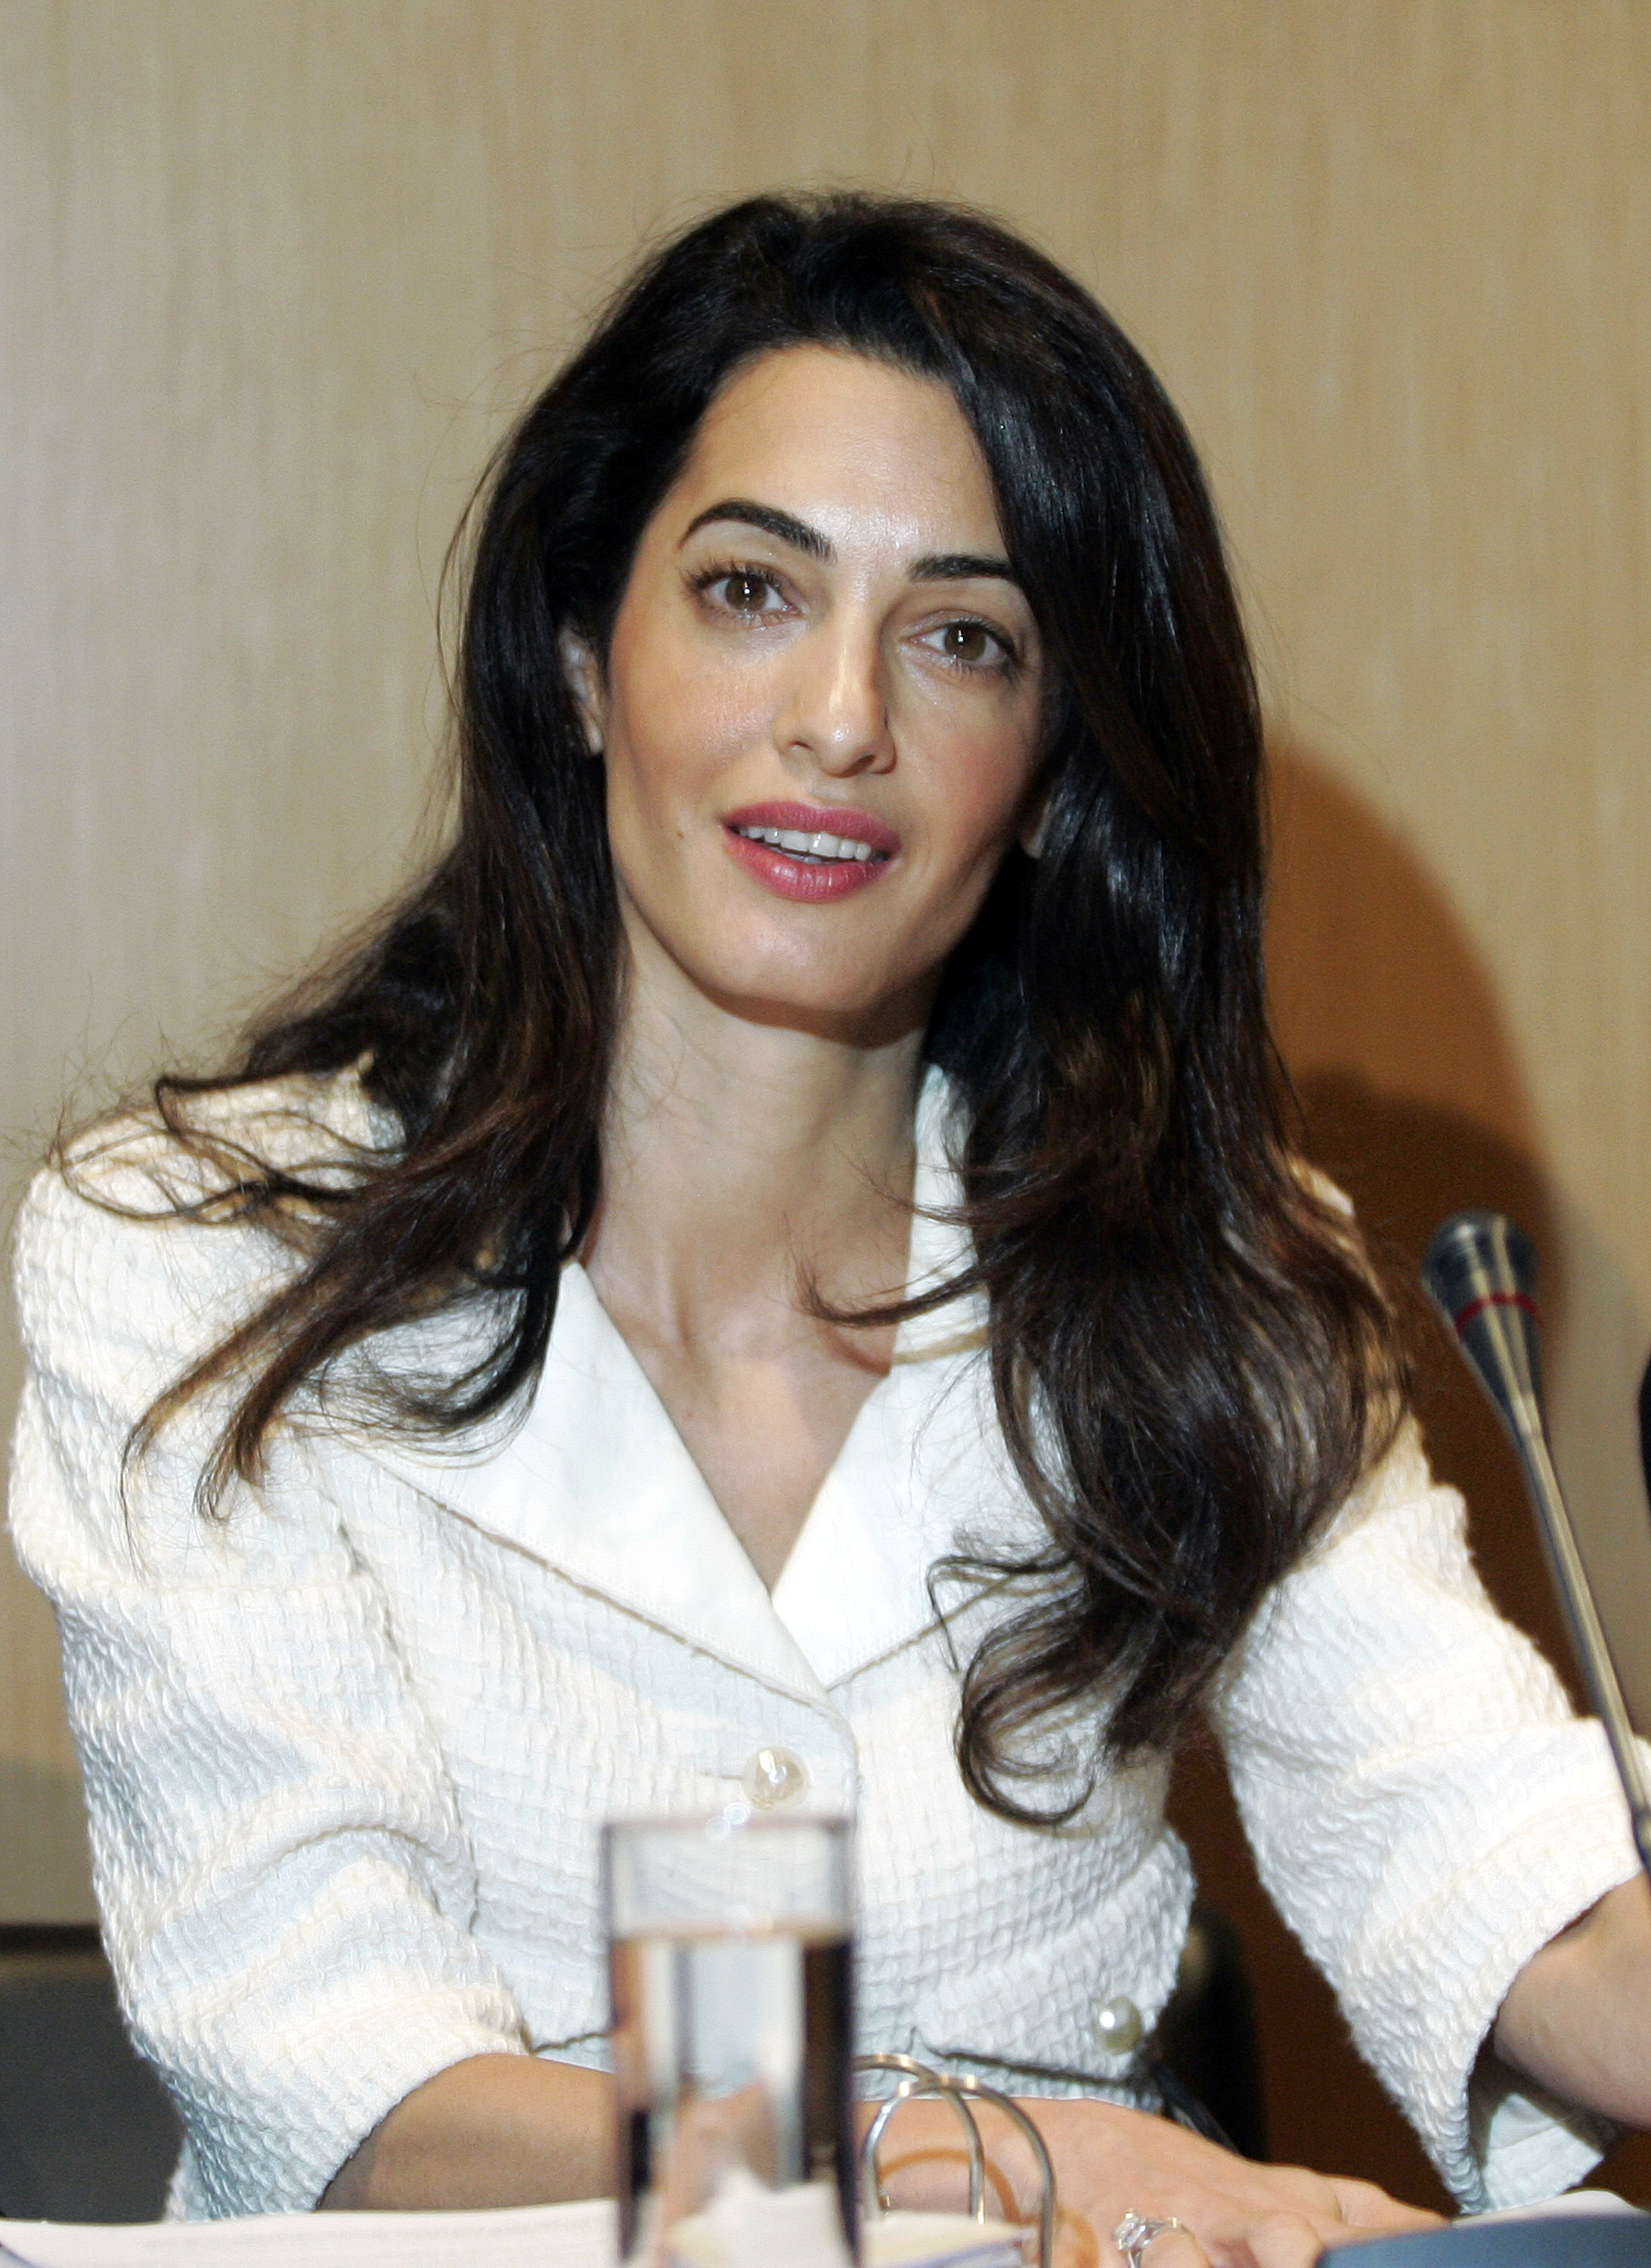 Amal Alamuddin Clooney attends a press conference at the Acropolis Museum in Athens on October 15, 2014 in Athens, Greece.